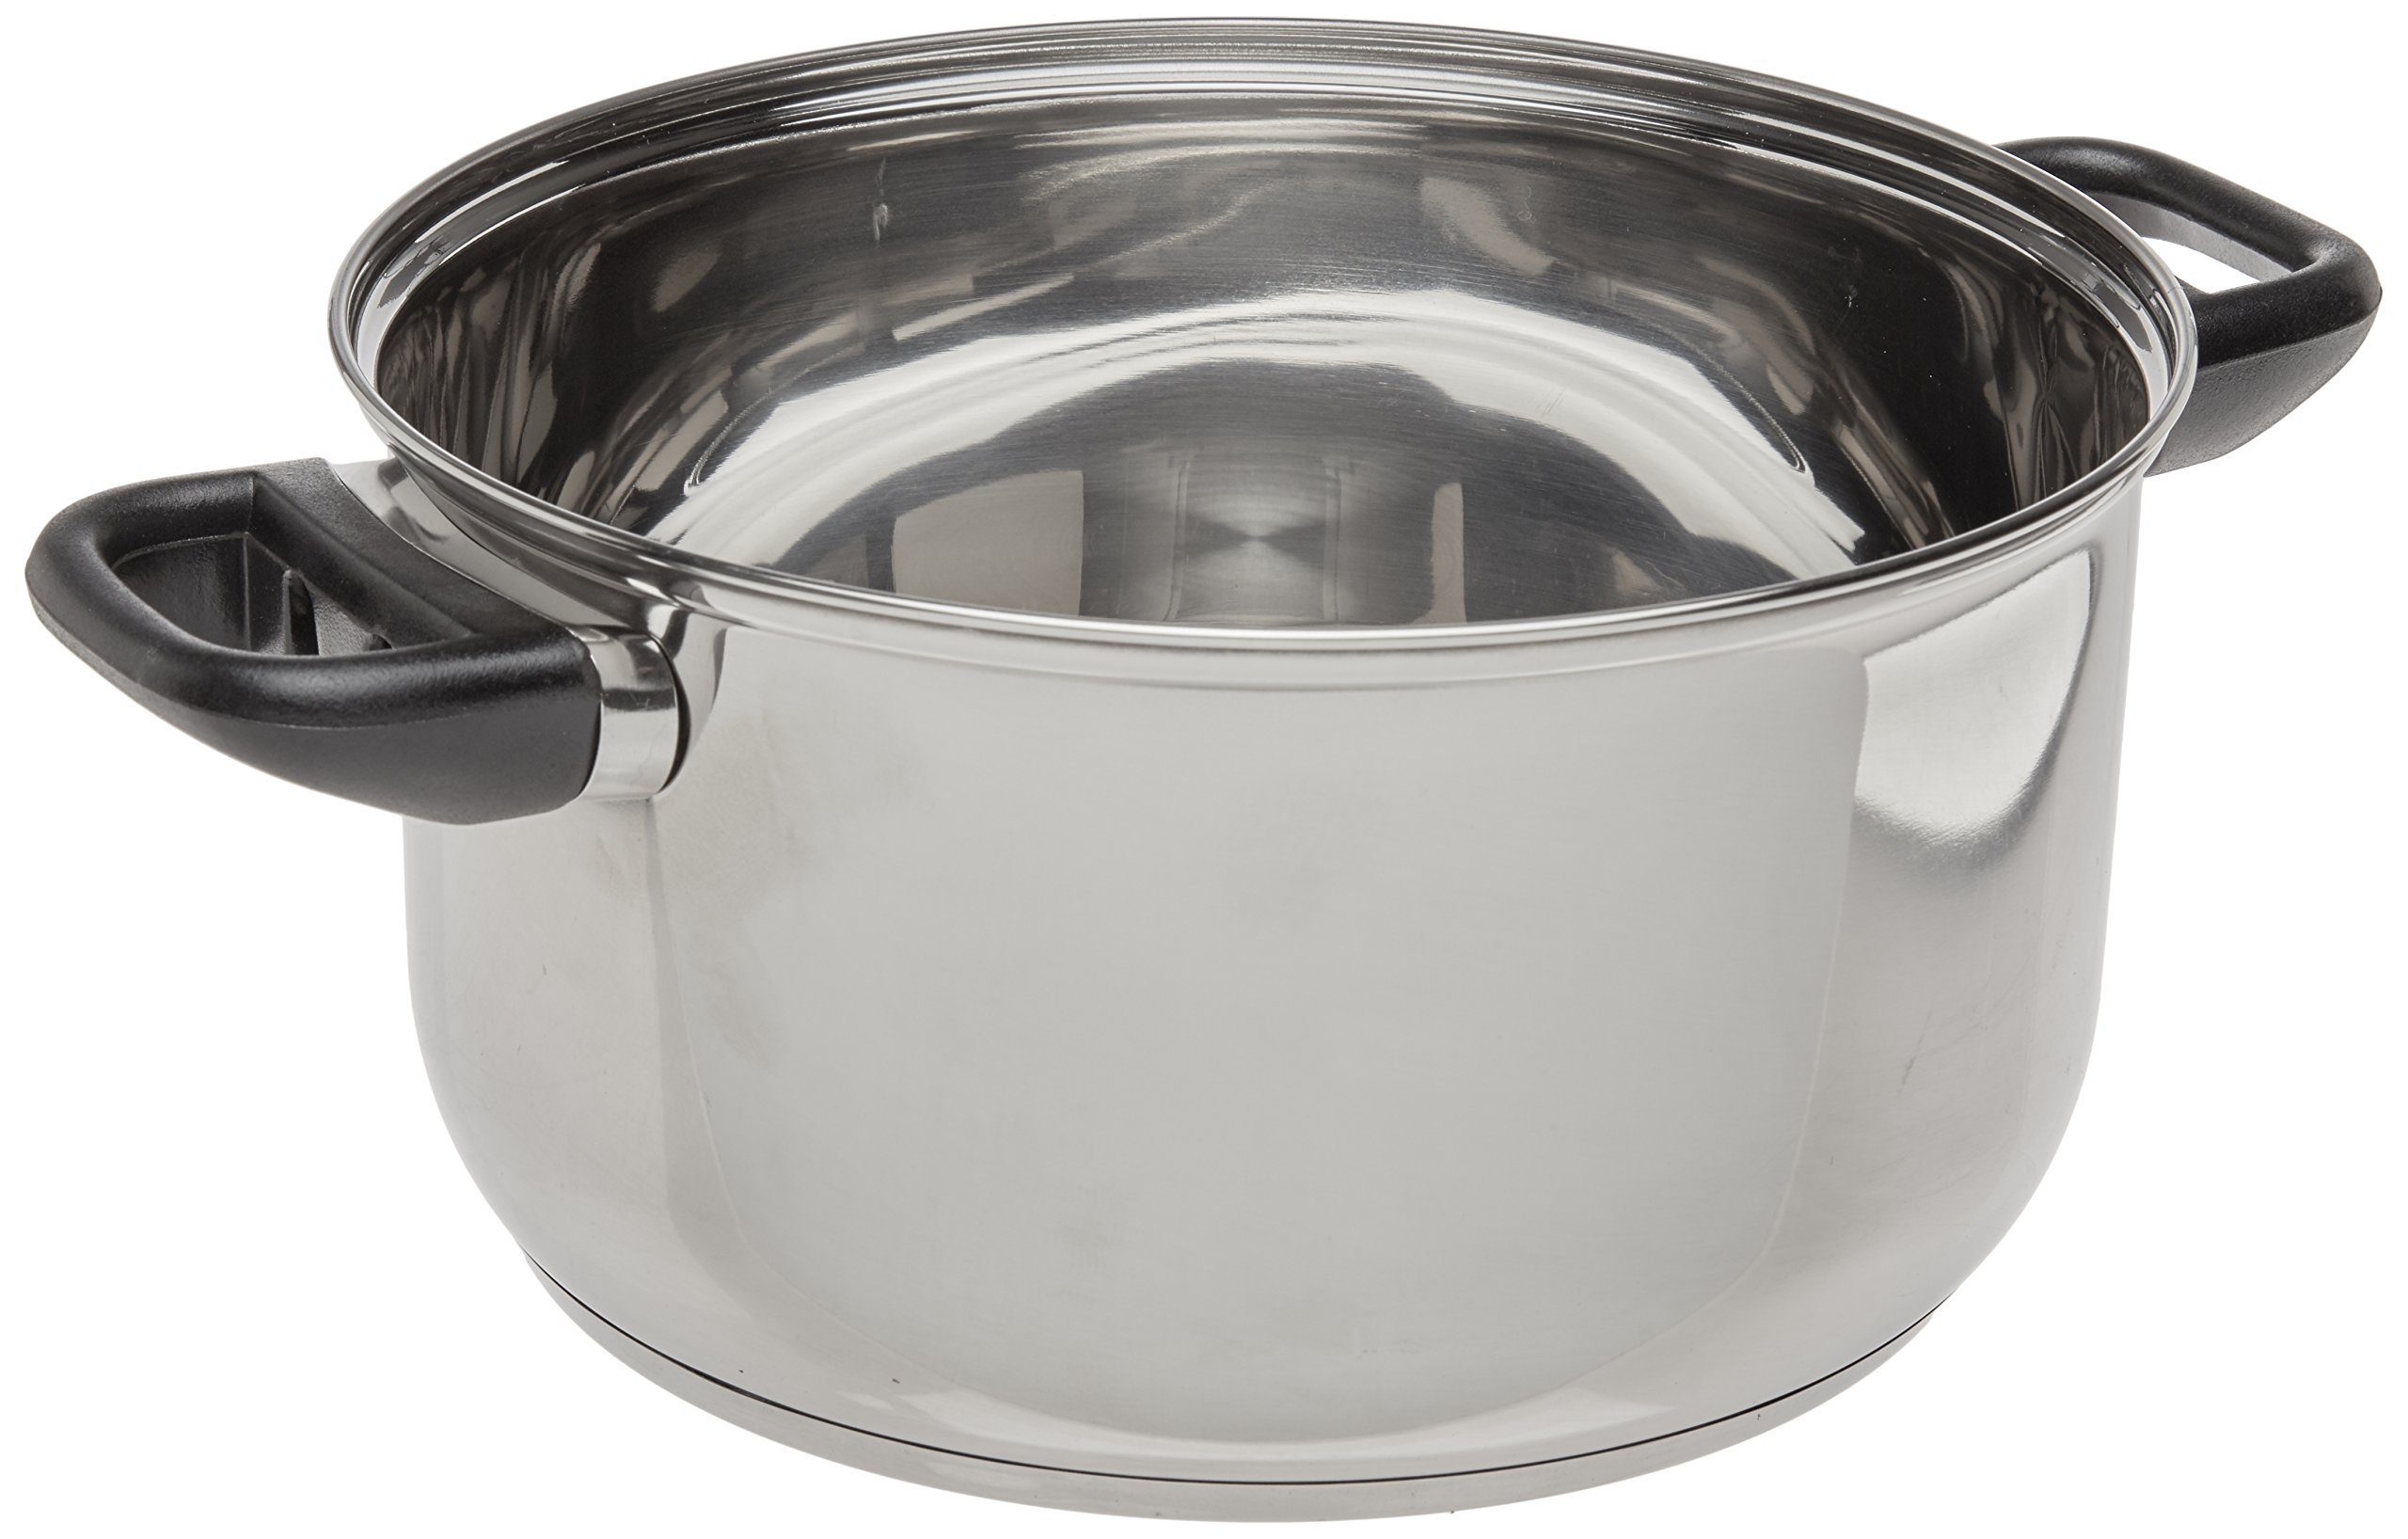 Regalware Food Service Lodging Economy Stainless 5 Quart Dutch Oven